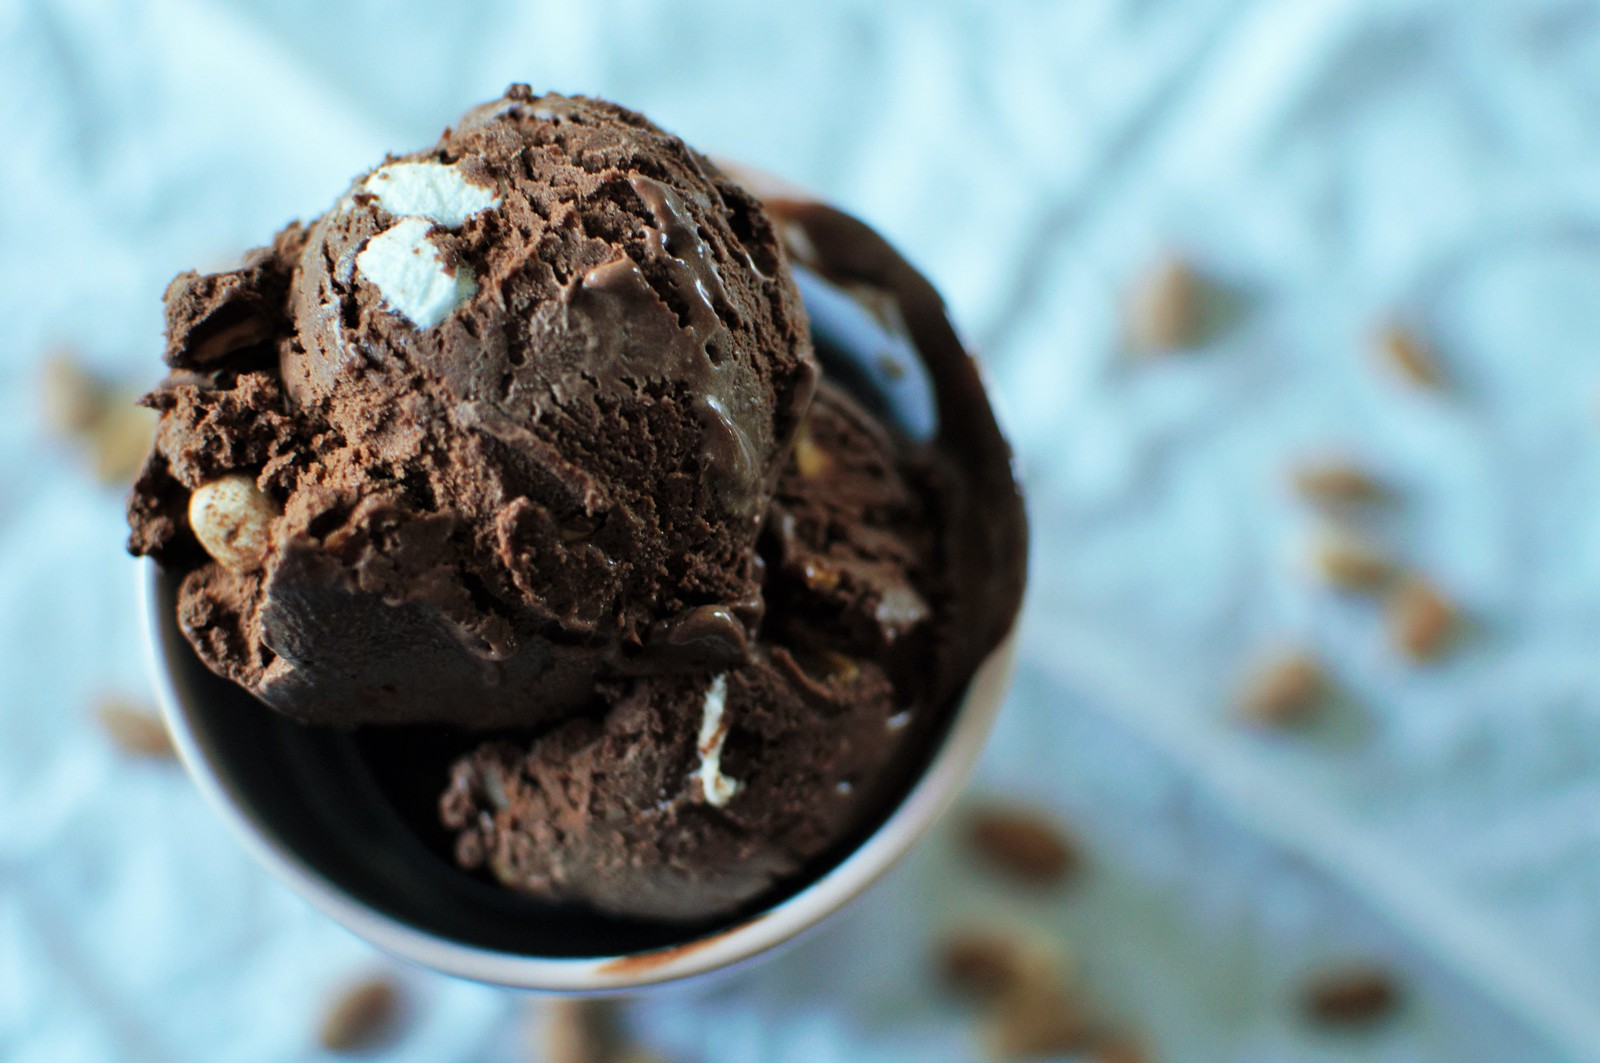 Rocky Road Ice Cream 2